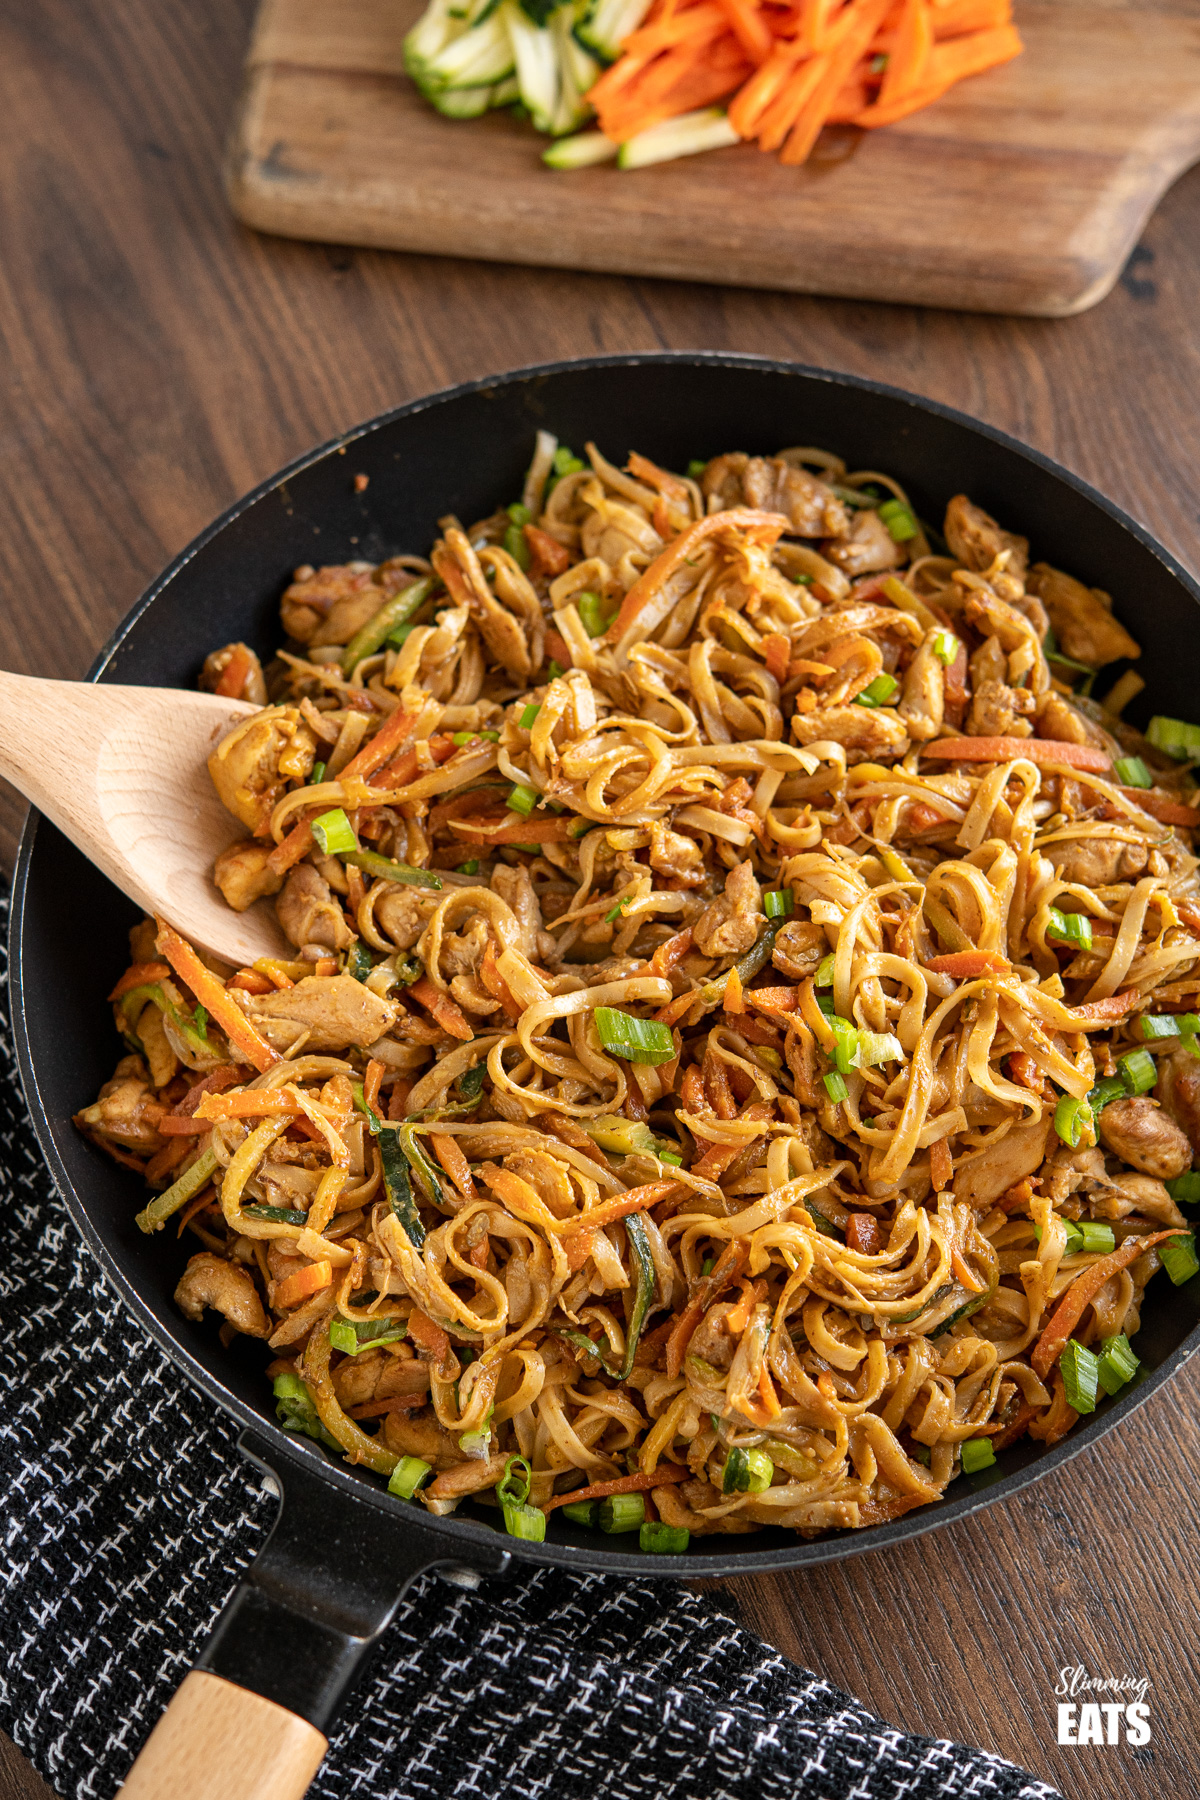 Easy Peanut Chicken Noodles in frying pan with wooden spoon, chopping board with carrots and zucchini in background